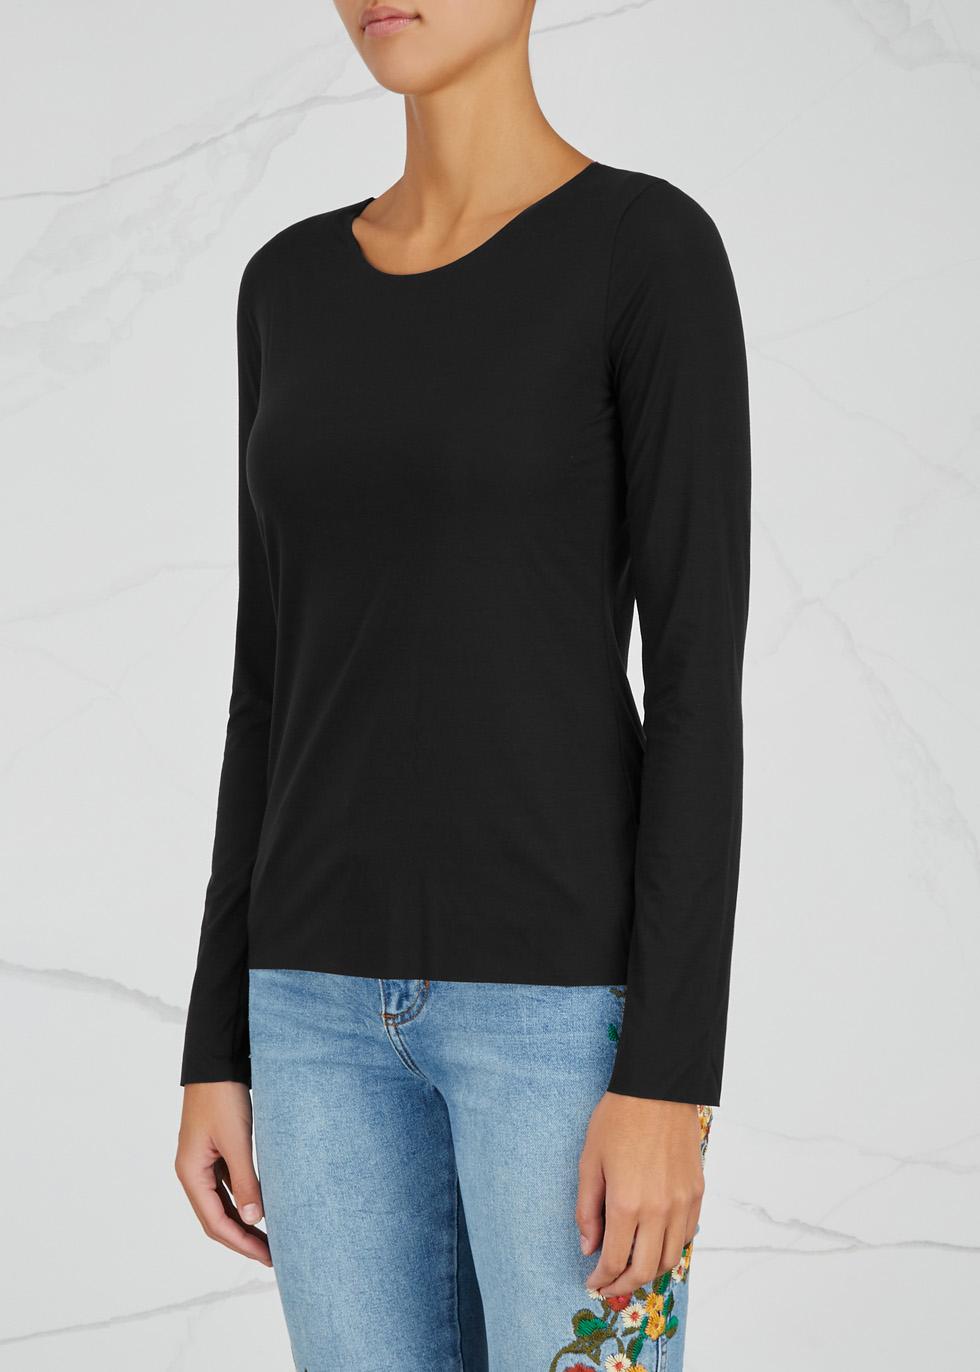 Pure black jersey top - Wolford